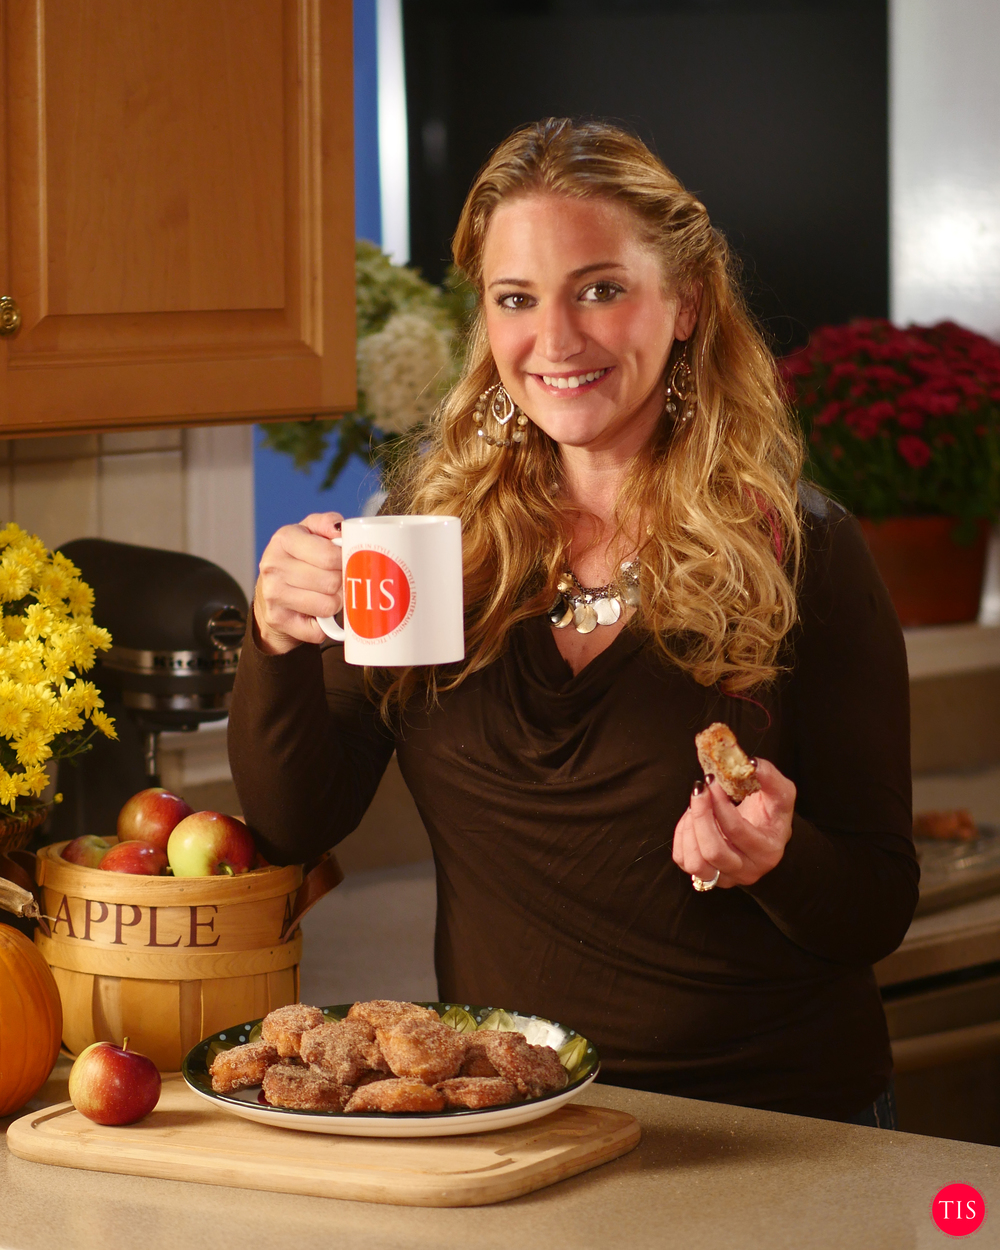 Jennifer Maring shares how to make Apple Fritters.